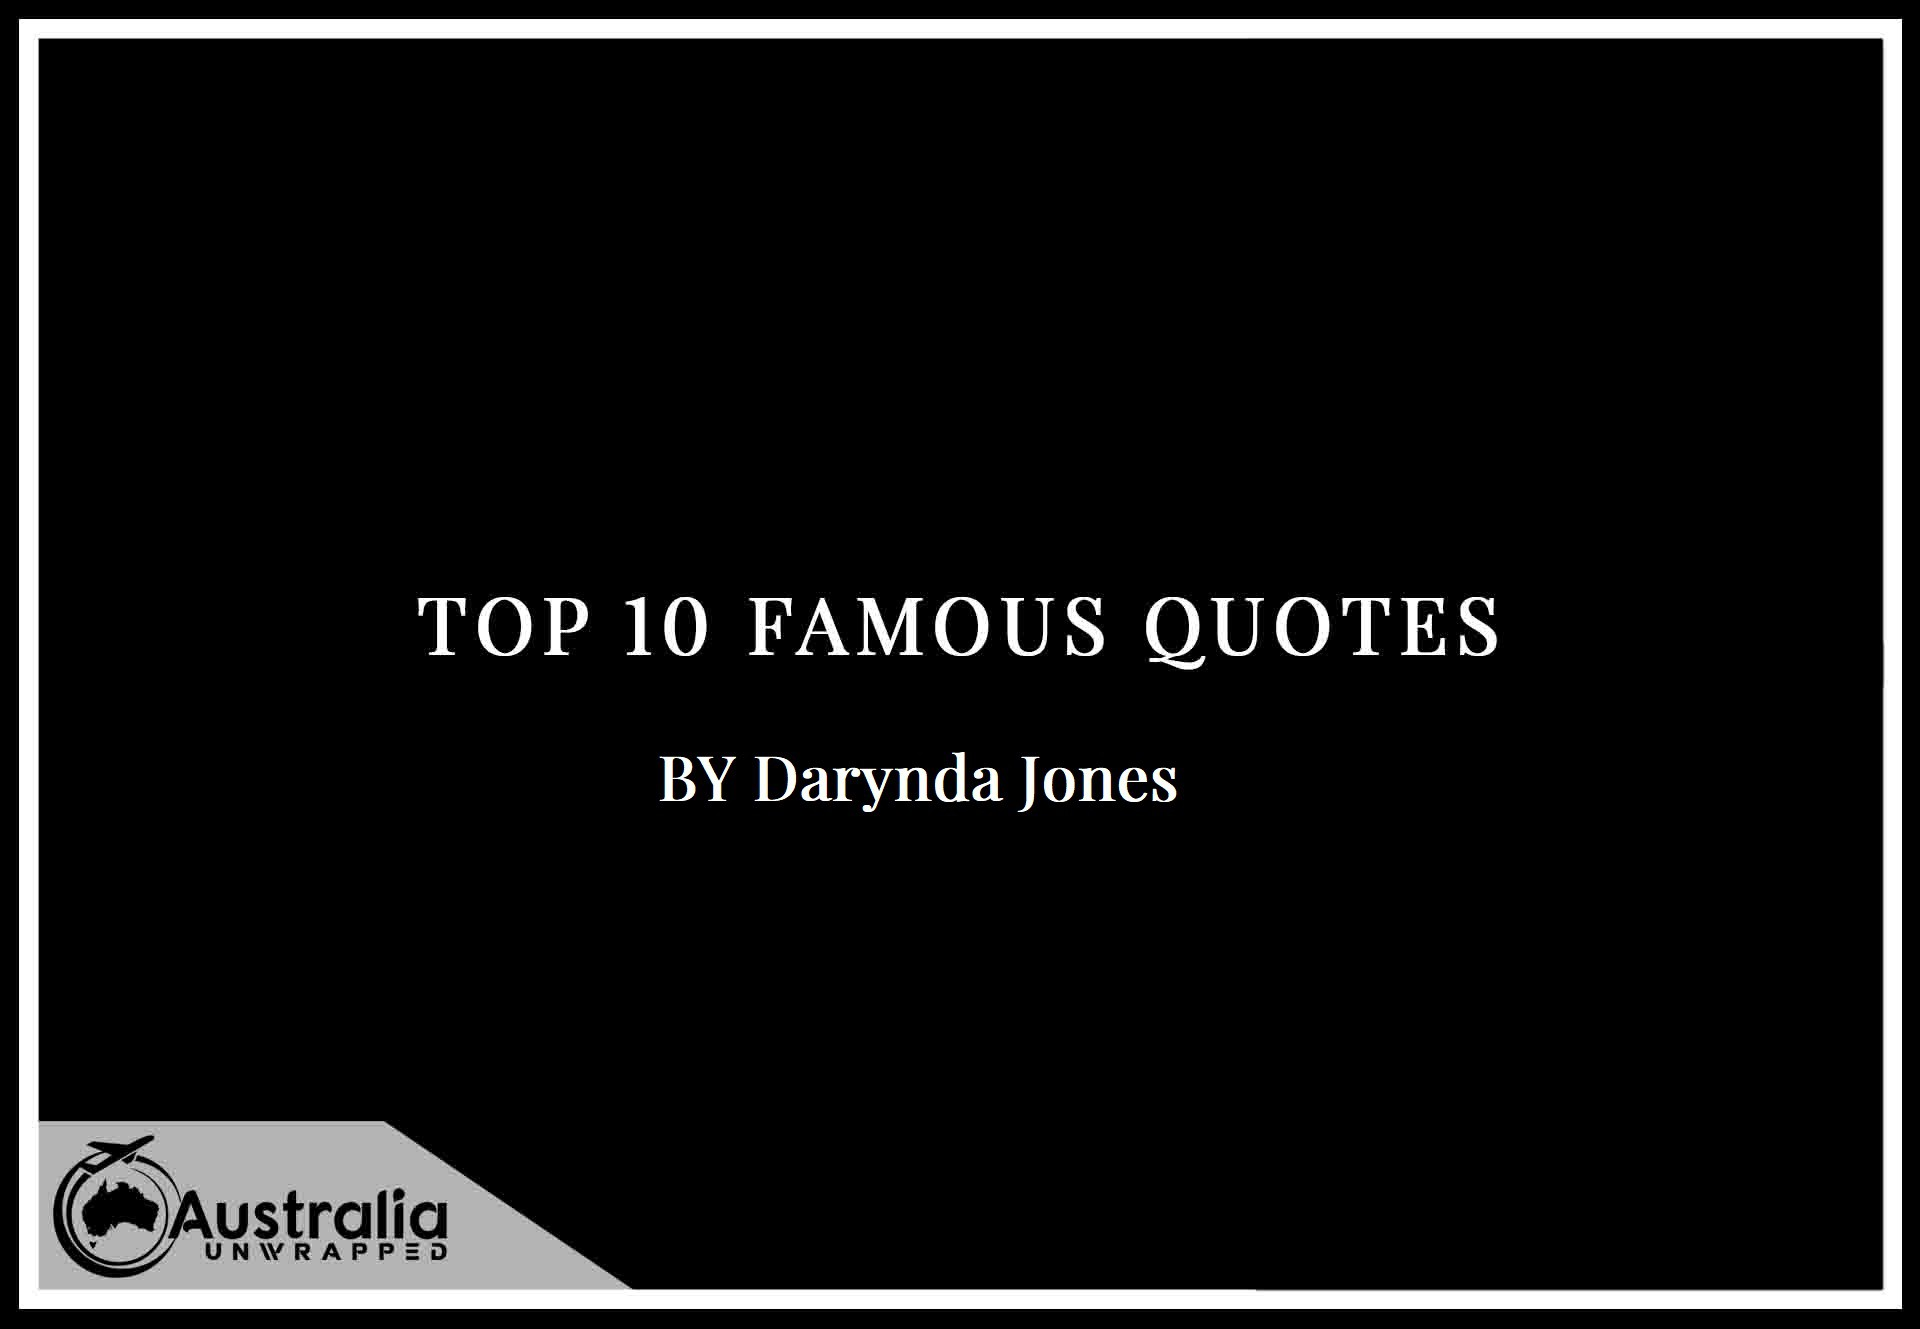 Top 10 Famous Quotes by Author Darynda Jones